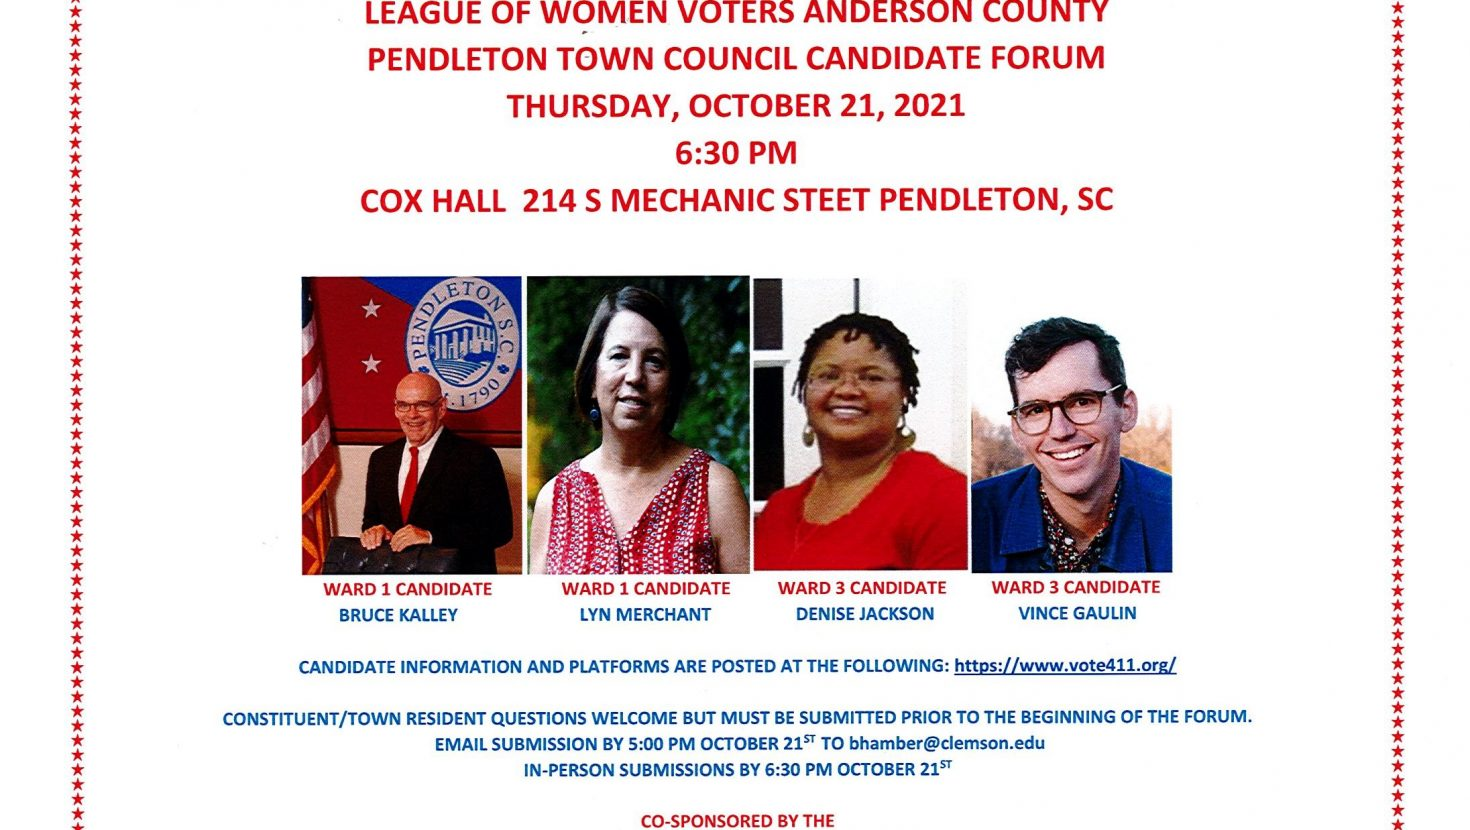 The League of Women Voters Anderson County is hosting a Candidate Forum